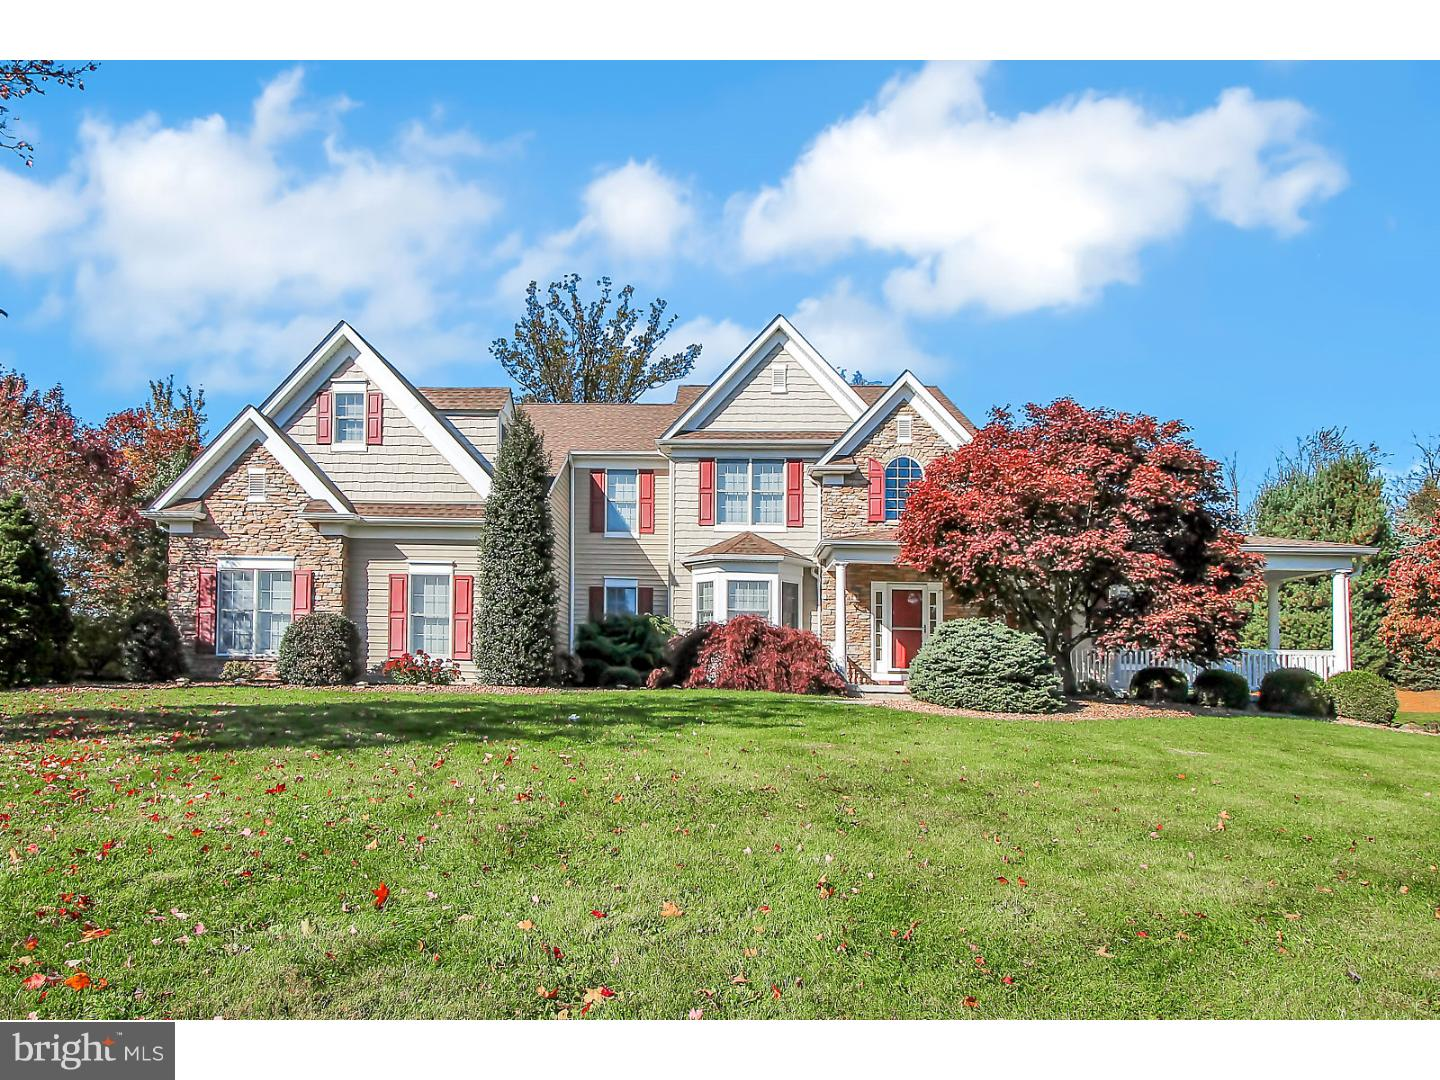 8865 CLEARWATER CIRCLE, FOGELSVILLE, PA 18051